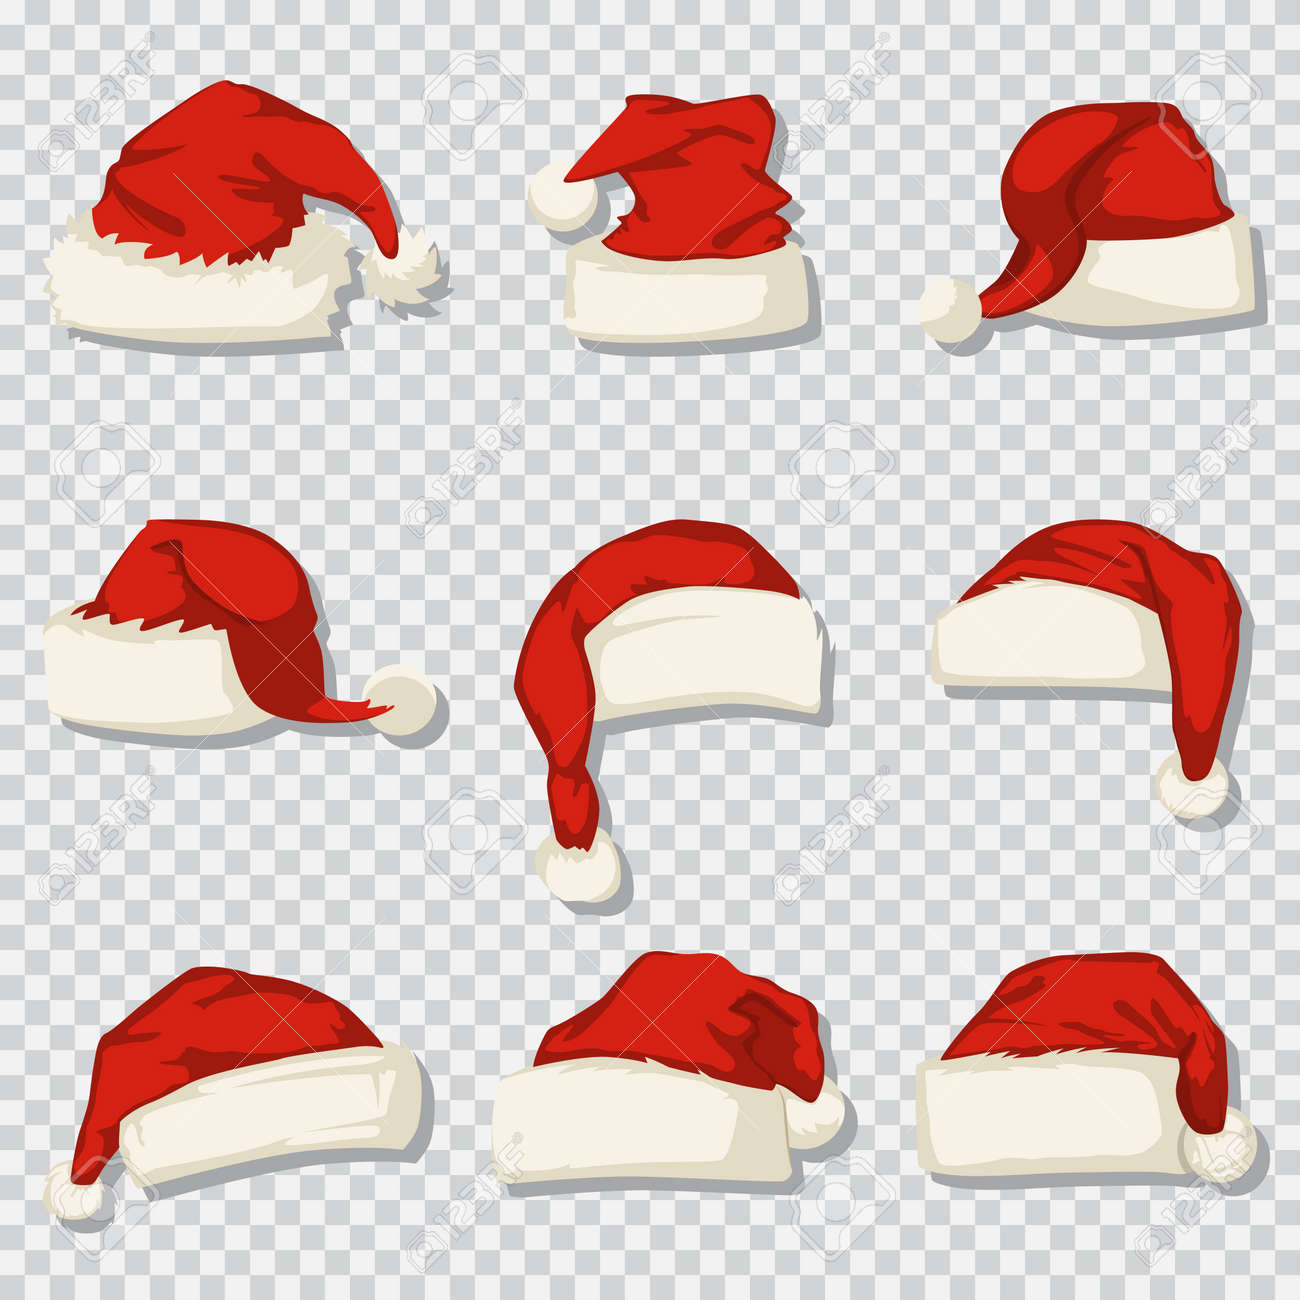 Transparent Christmas Hat.Santa Claus Hat Set Isolated On A Transparent Background Vector